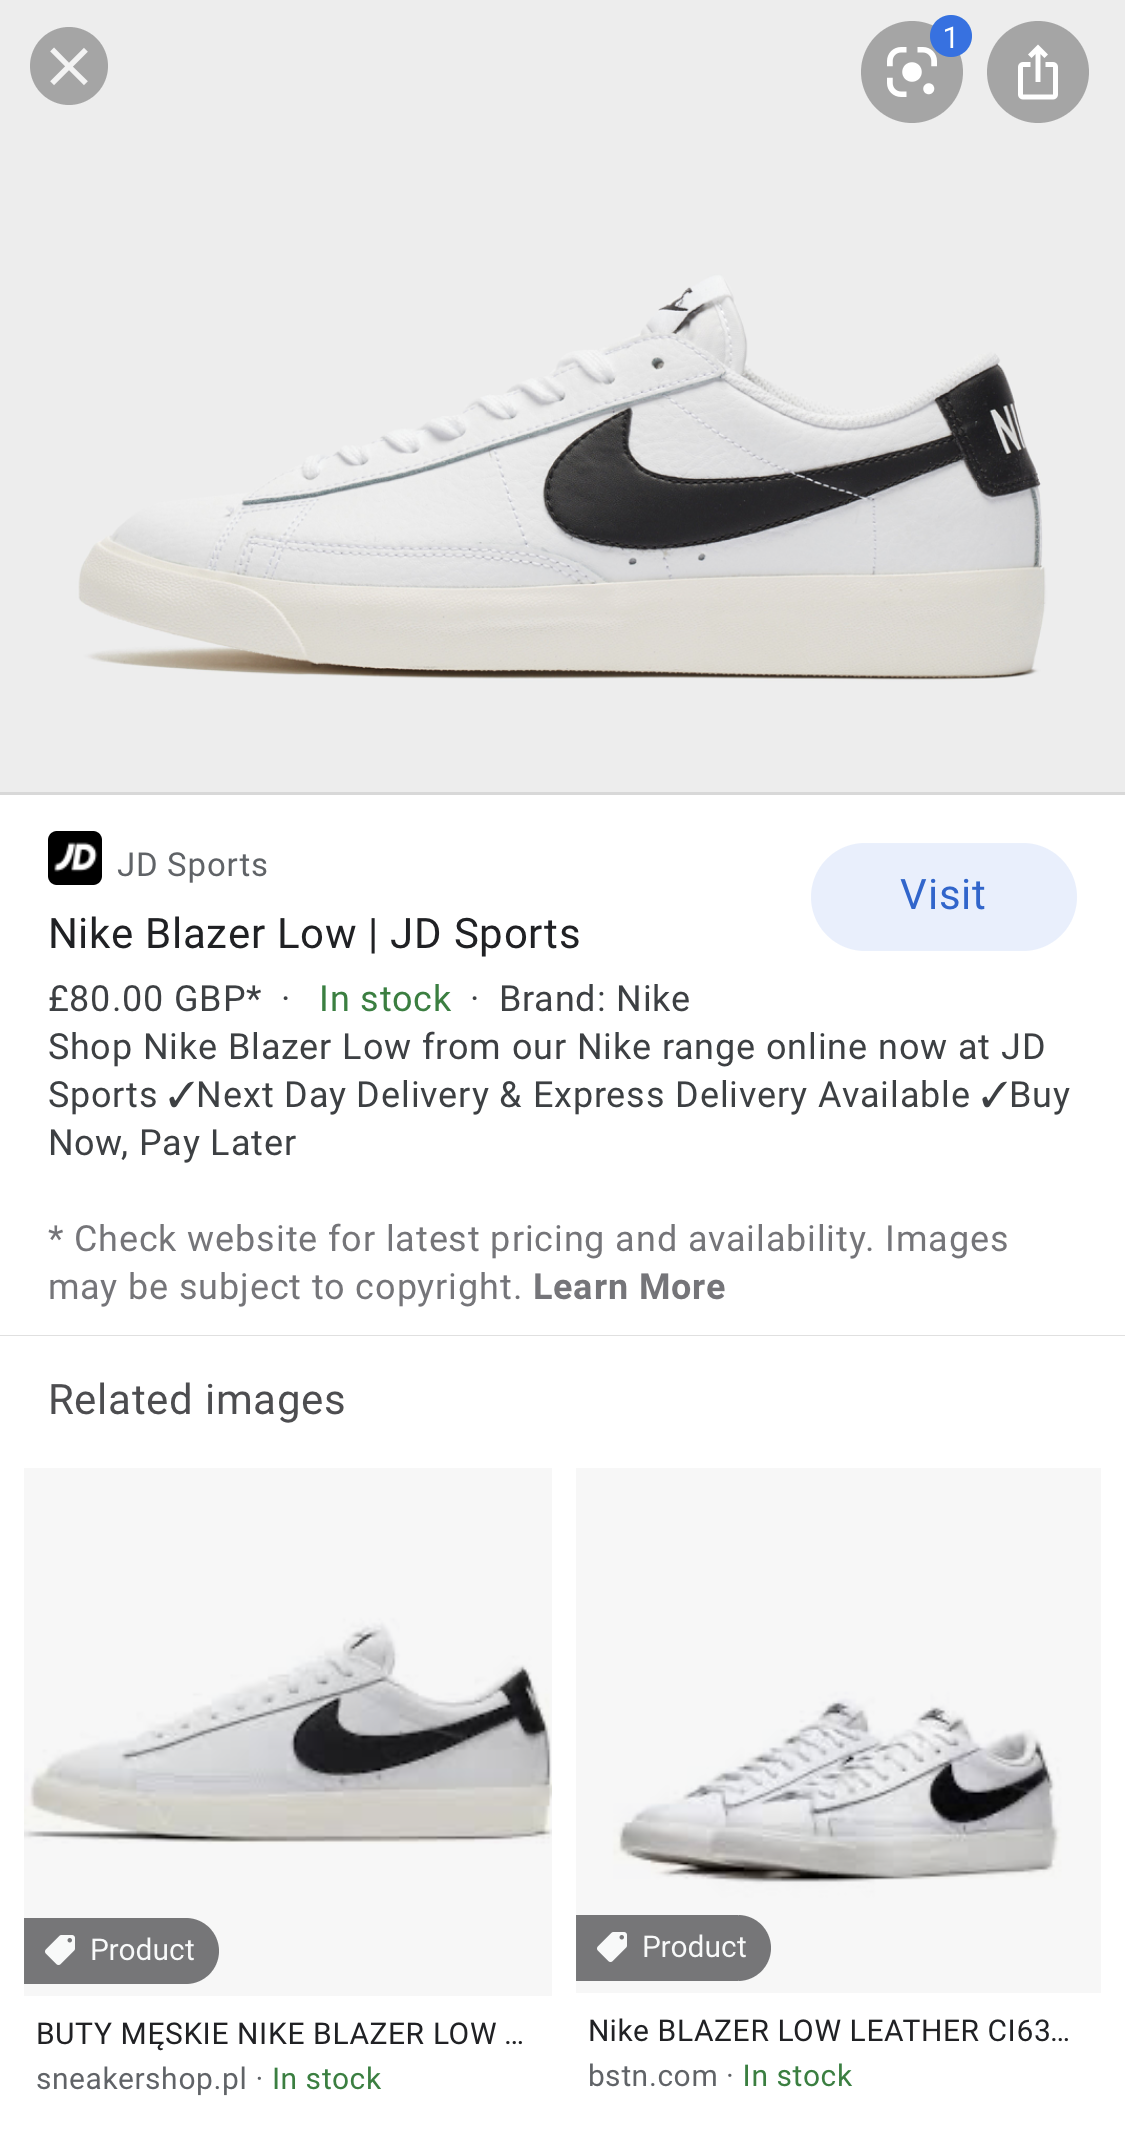 Google Images result for Products Rich Snippet.